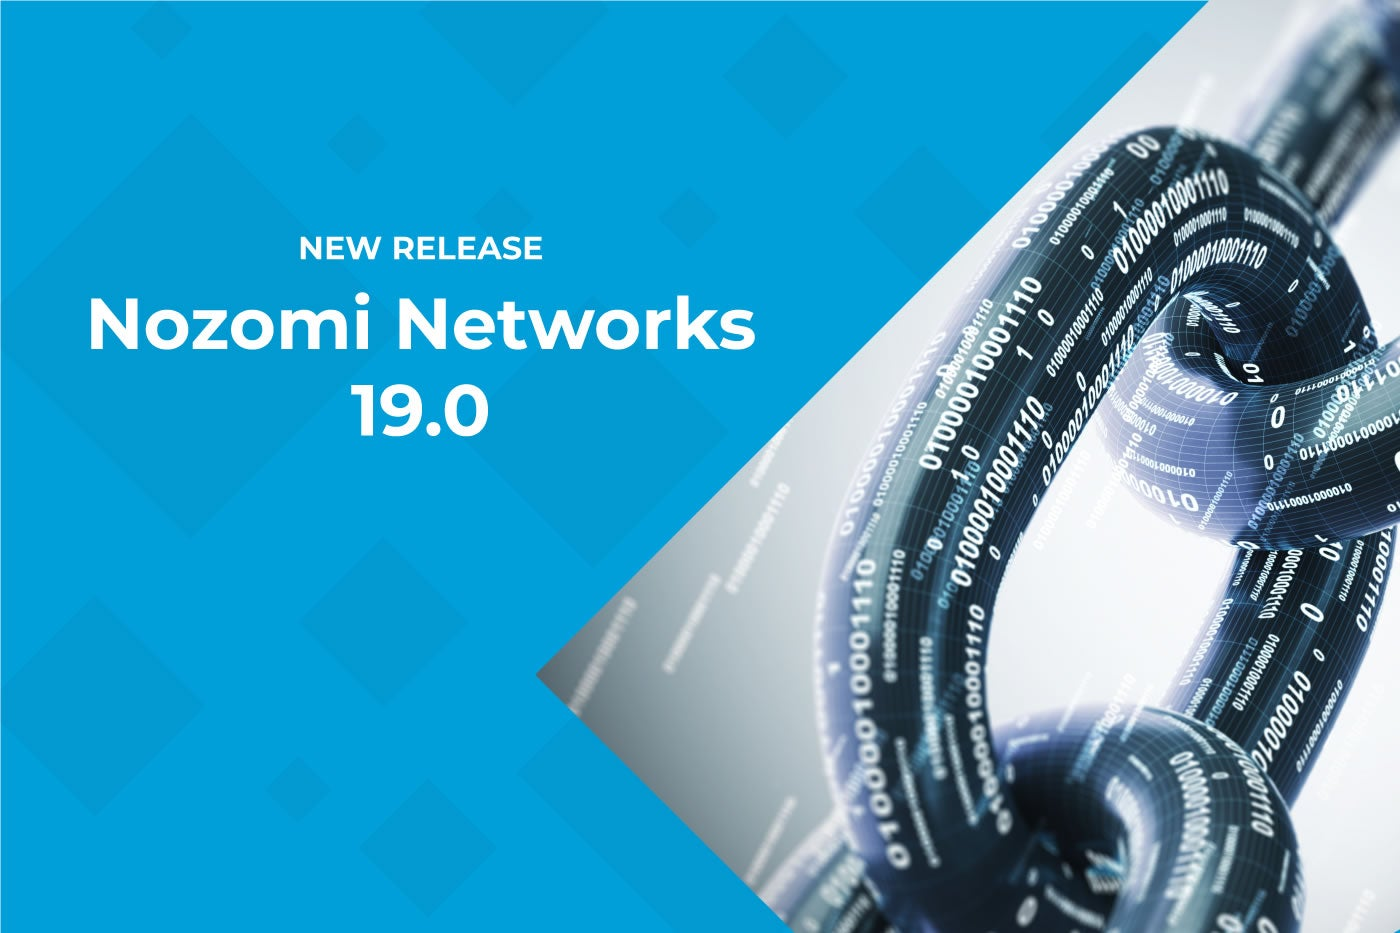 What's New in Nozomi Networks v19.0 ICS Security Solution